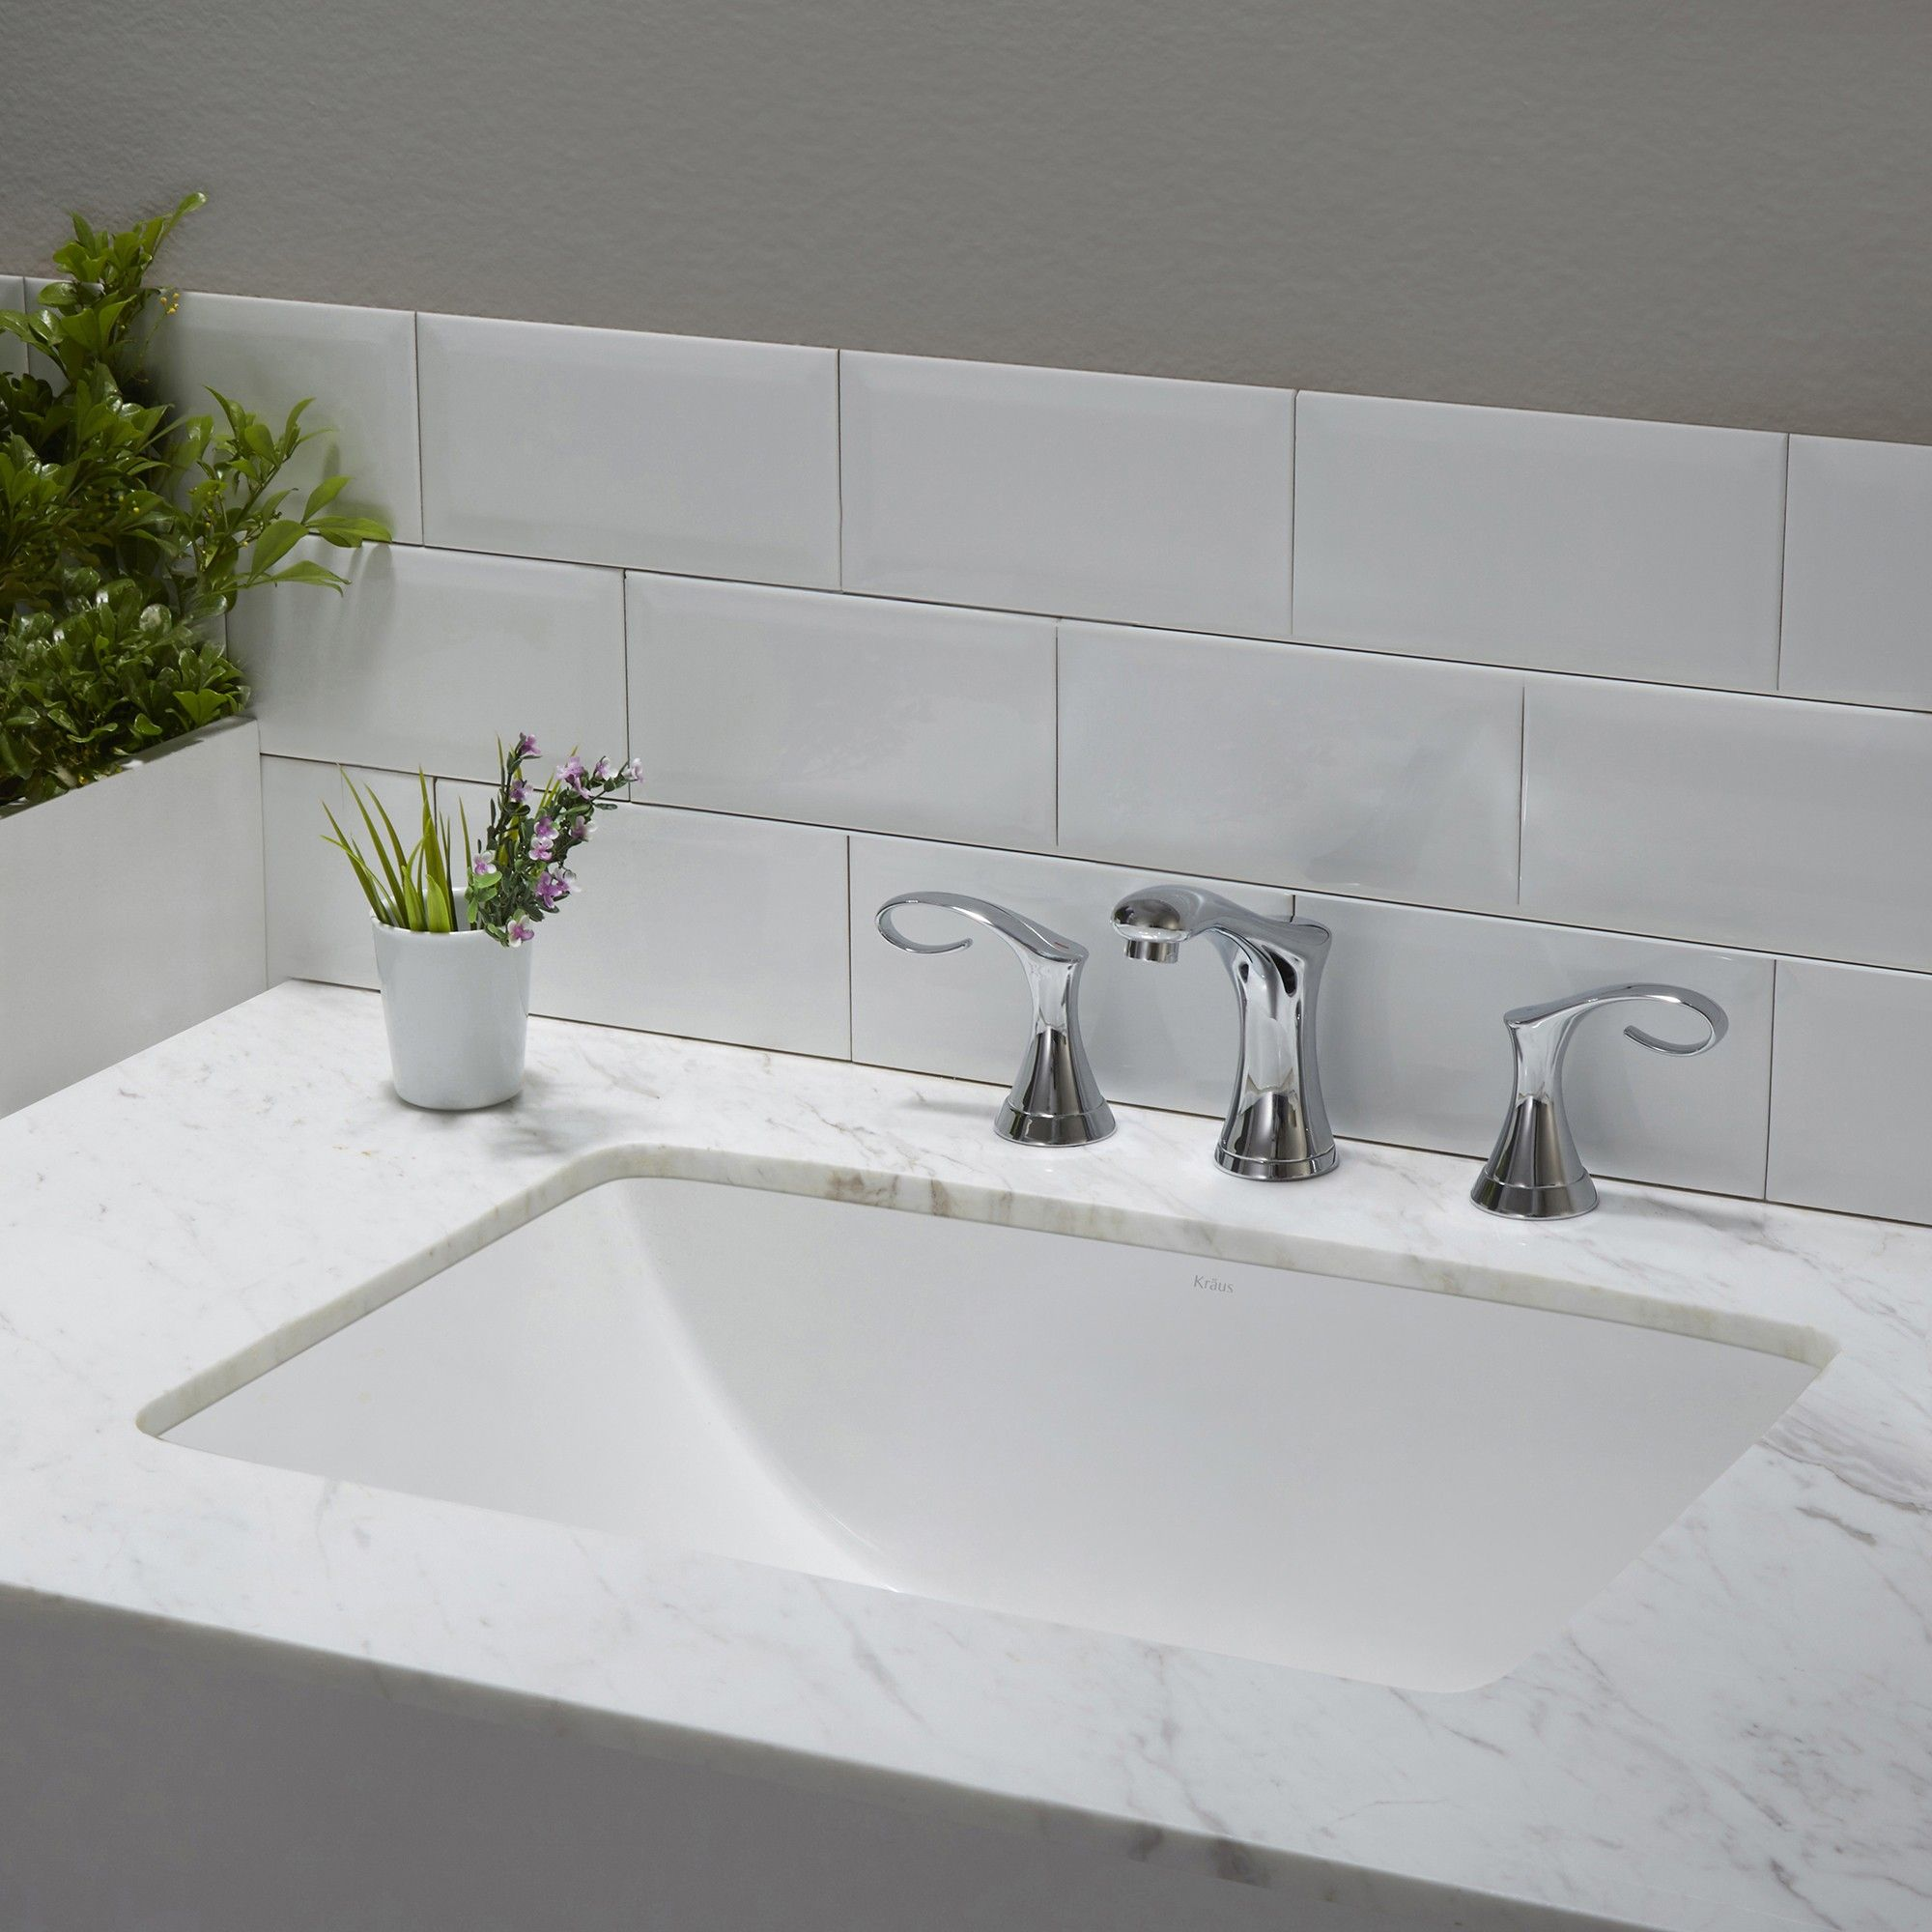 Elavo White Ceramic Large Rectangular Undermount Bathroom Sink W Overflow Sinks Kraususa